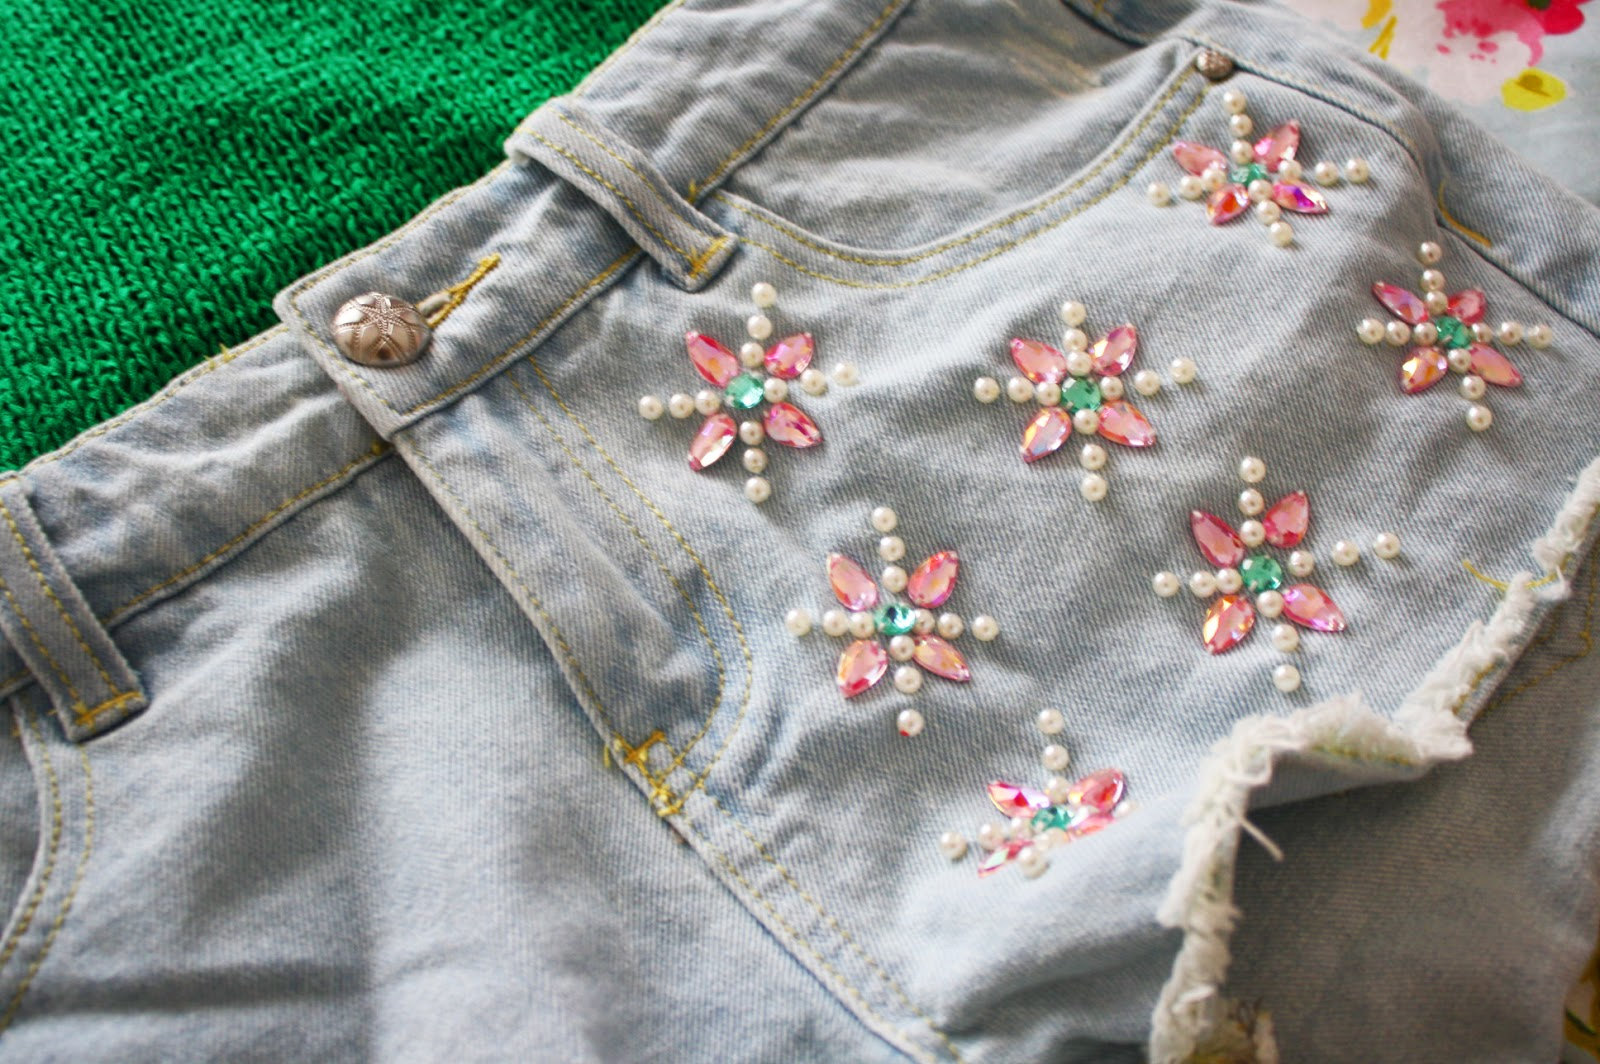 Cute detailing on a denim pair of shorts from Primark